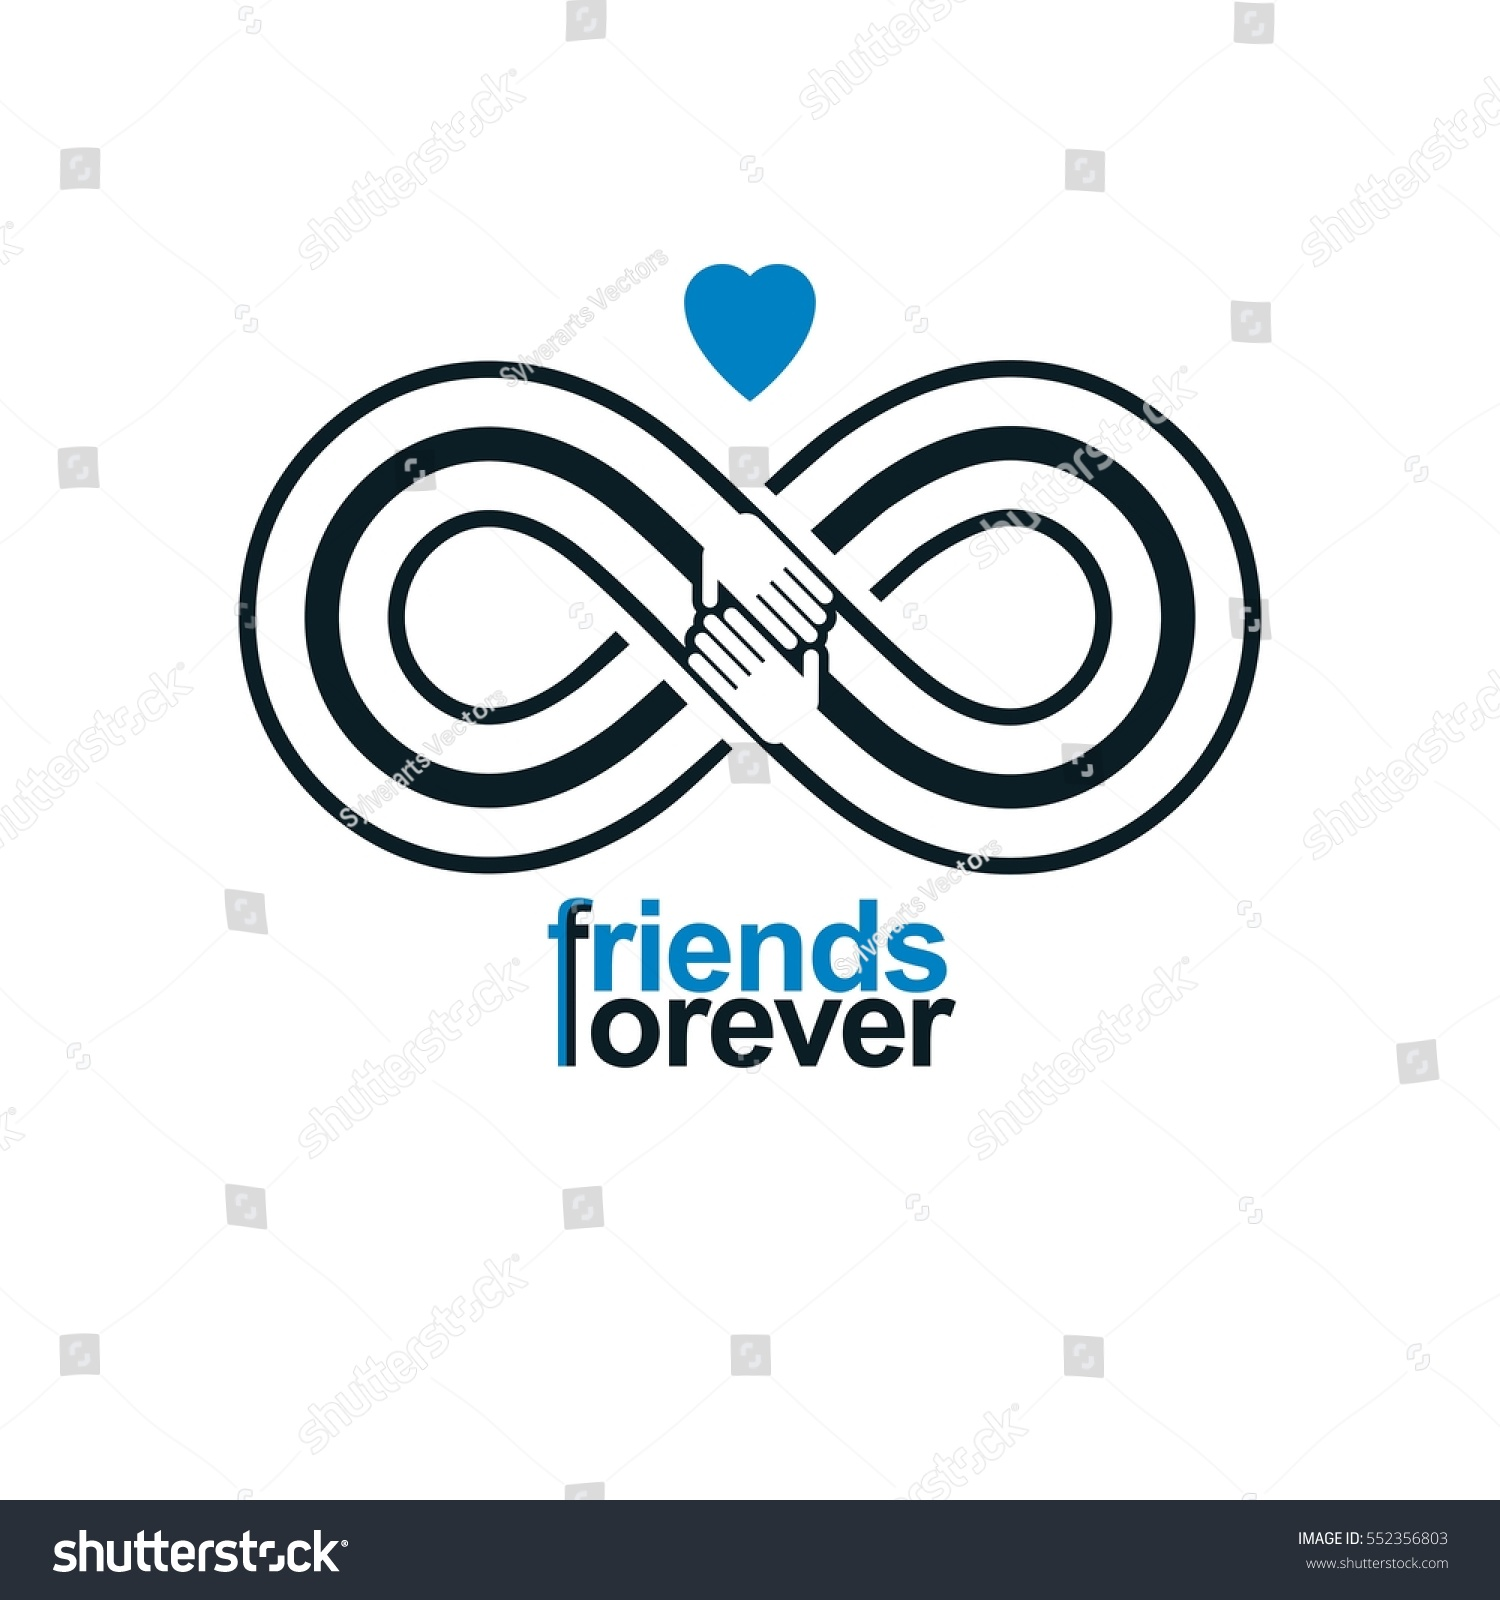 Friends forever everlasting friendship unusual vector stock vector friends forever everlasting friendship unusual vector logo combined with two symbols of infinity and human biocorpaavc Images